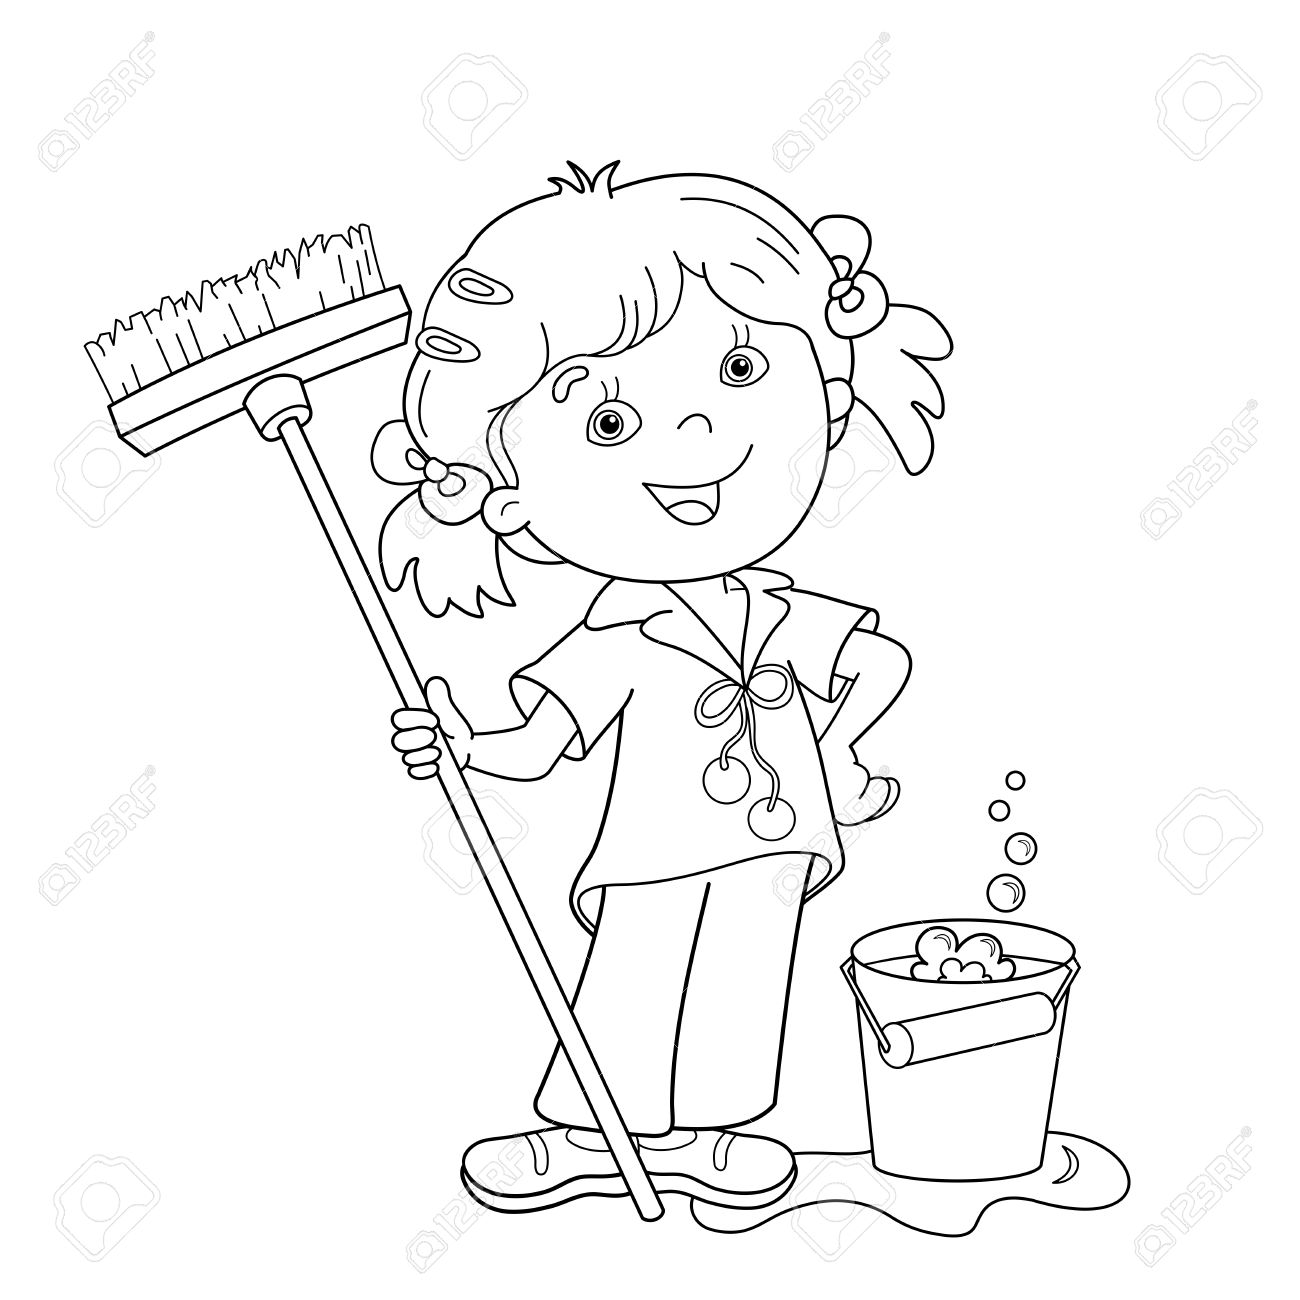 Coloring Page Outline Of Cartoon Girl With Mop And Bucket Housework Washing Floors